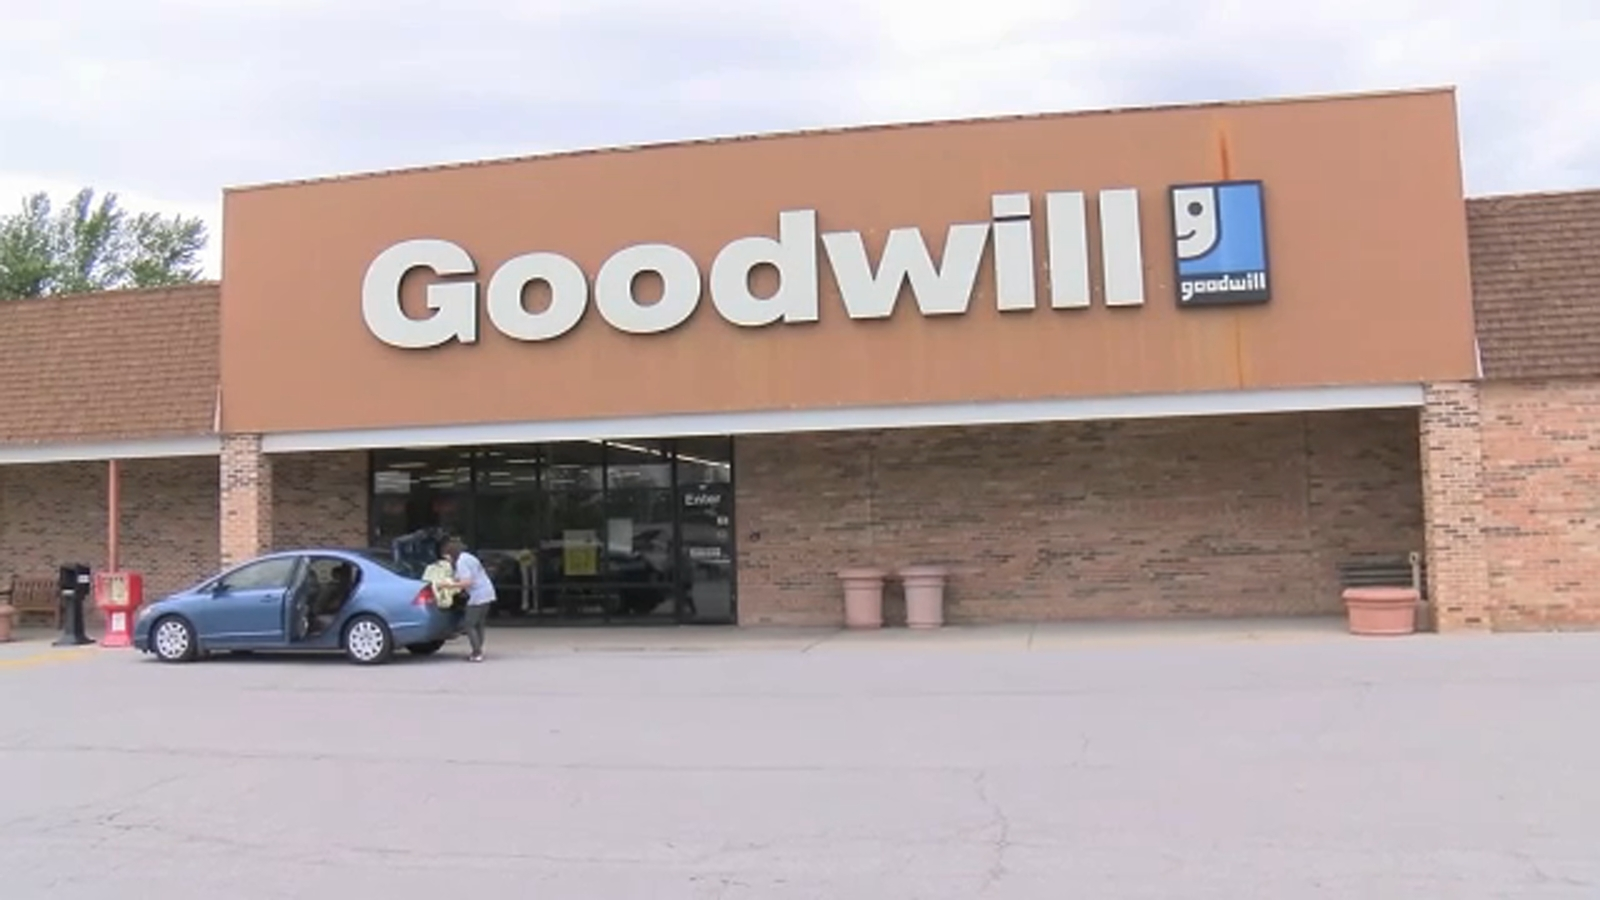 Illinois Goodwill reverses decision to lay off workers with disabilities